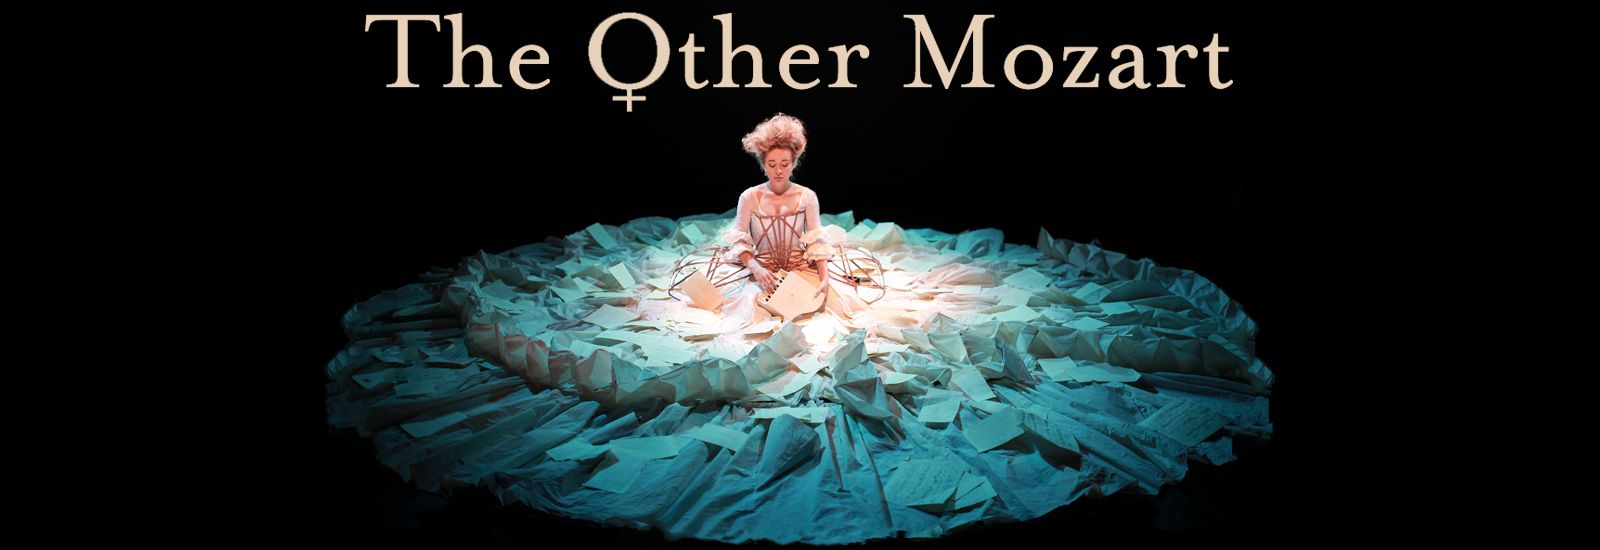 The Other Mozart_Title_Blue Dress_Banner